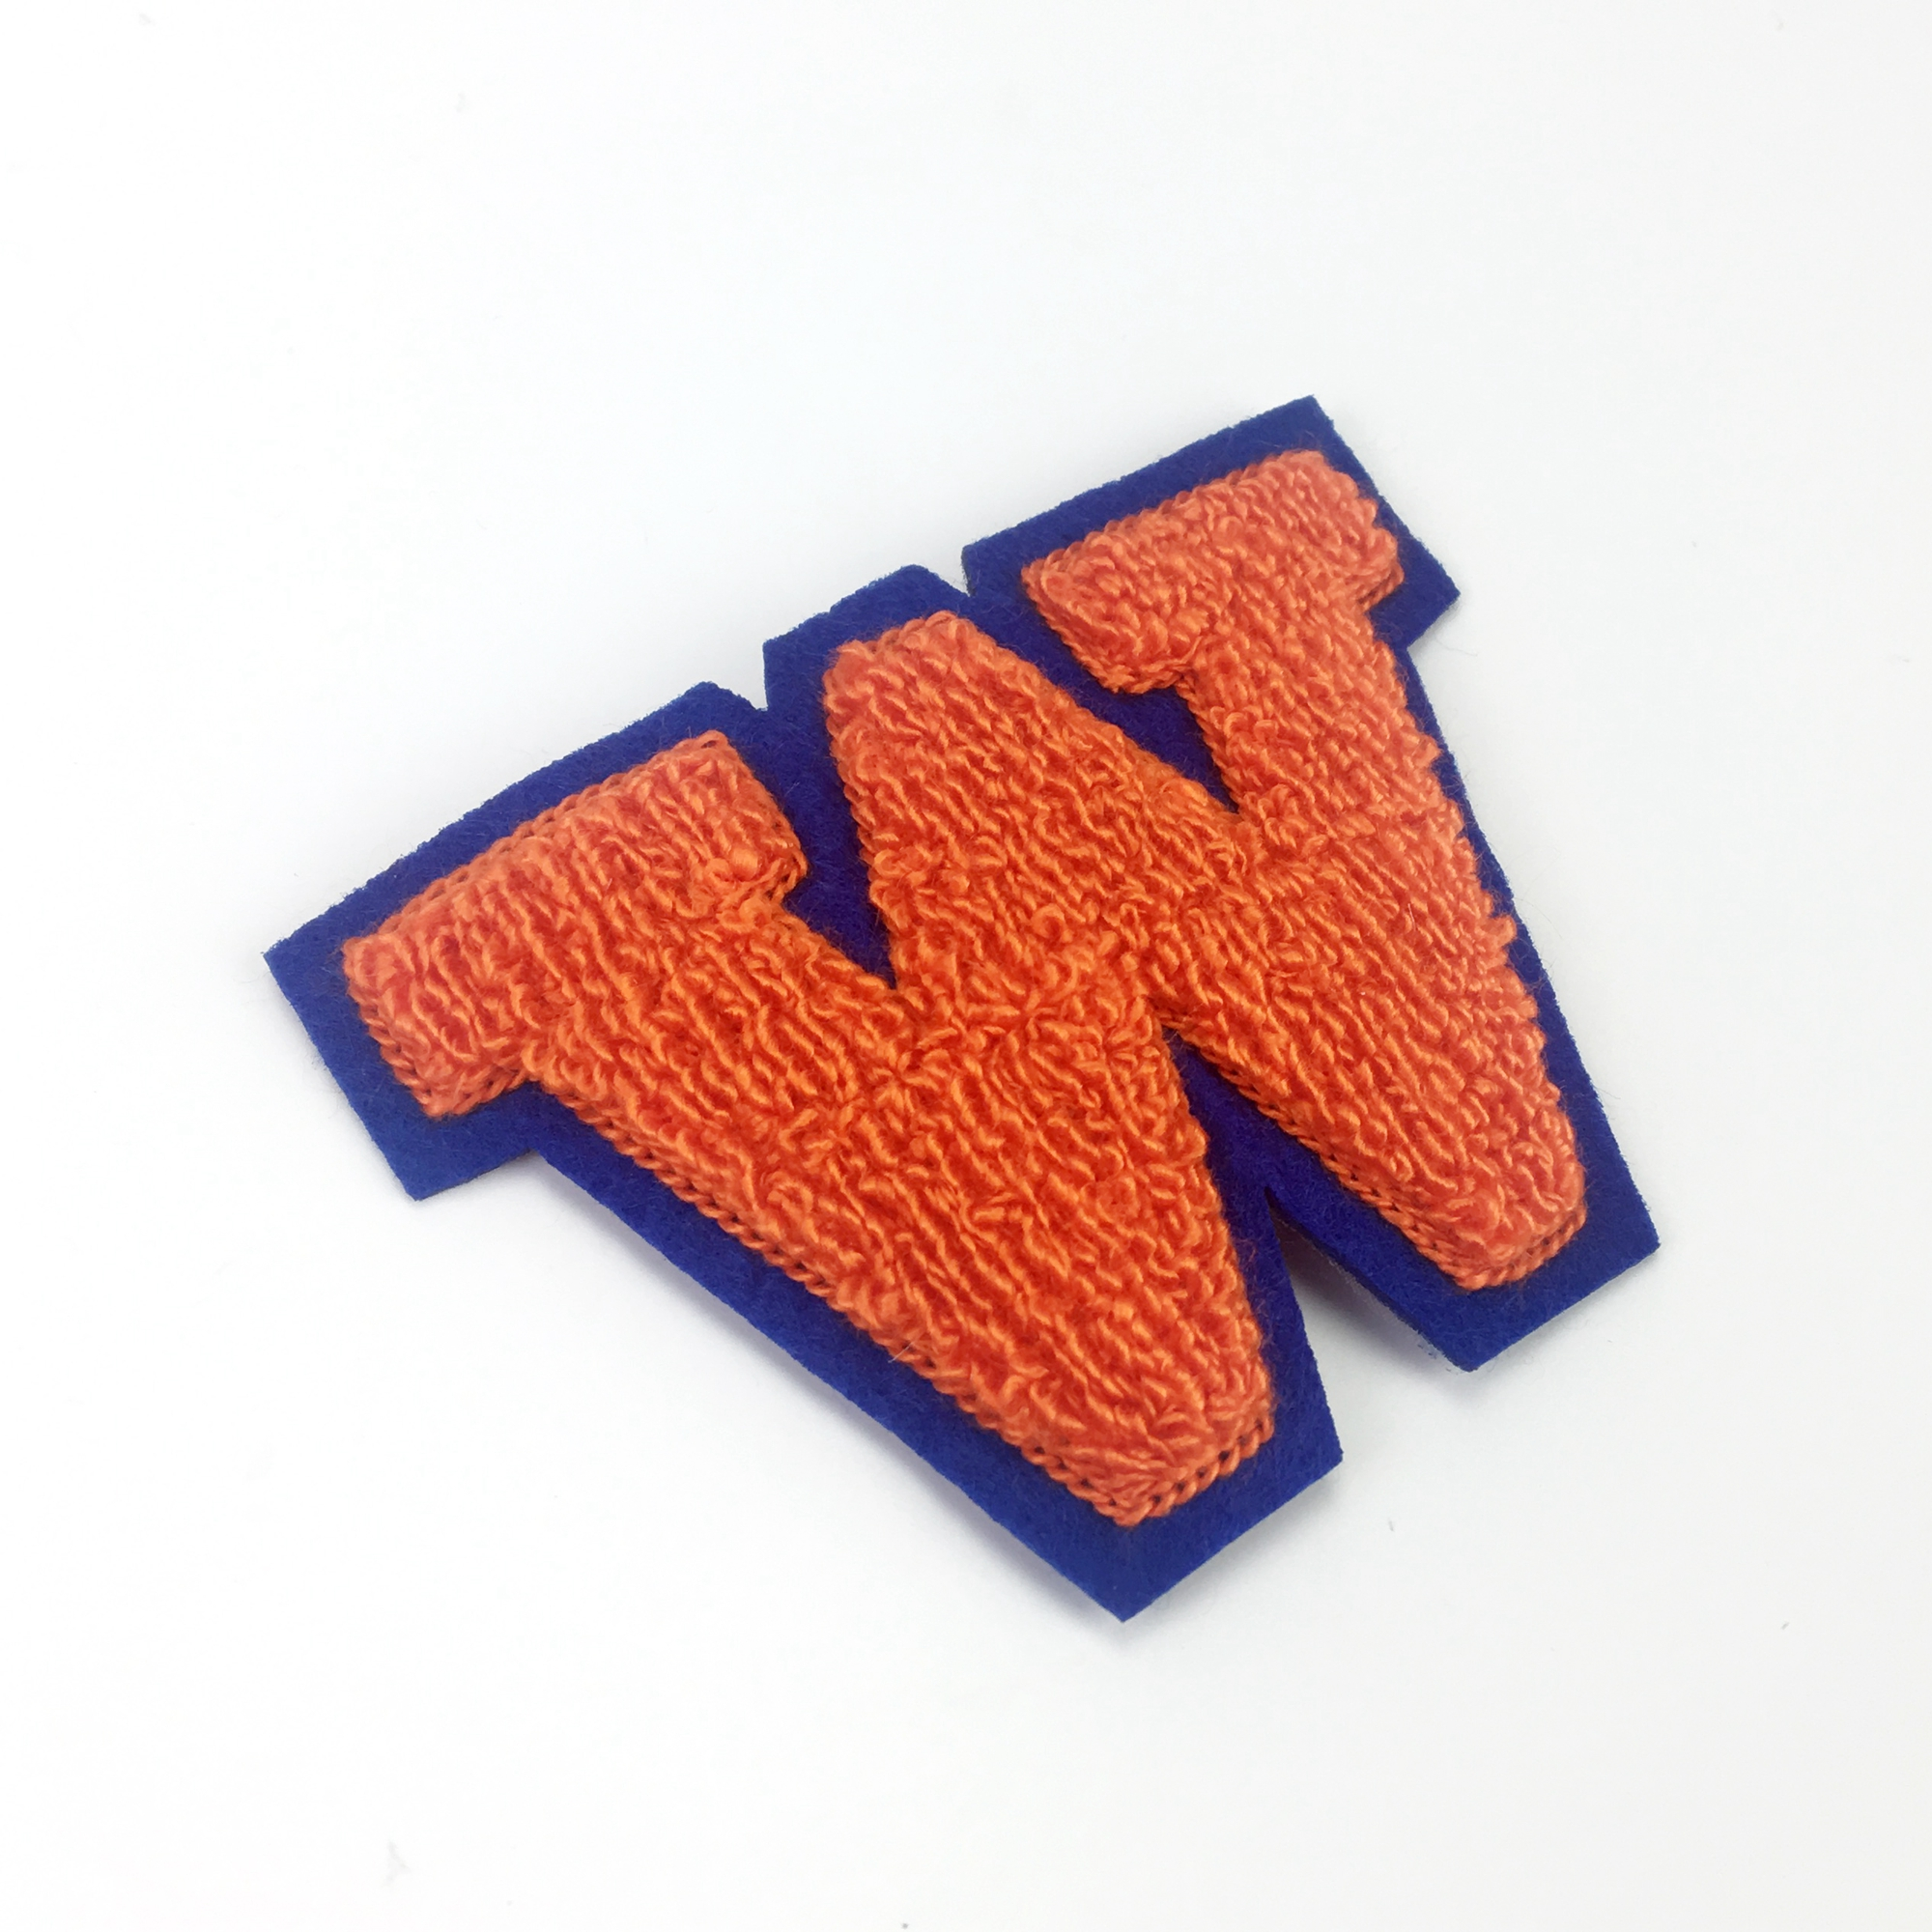 Sew On Chenille patch Embroidery Letter Patches For Hat Or Garments